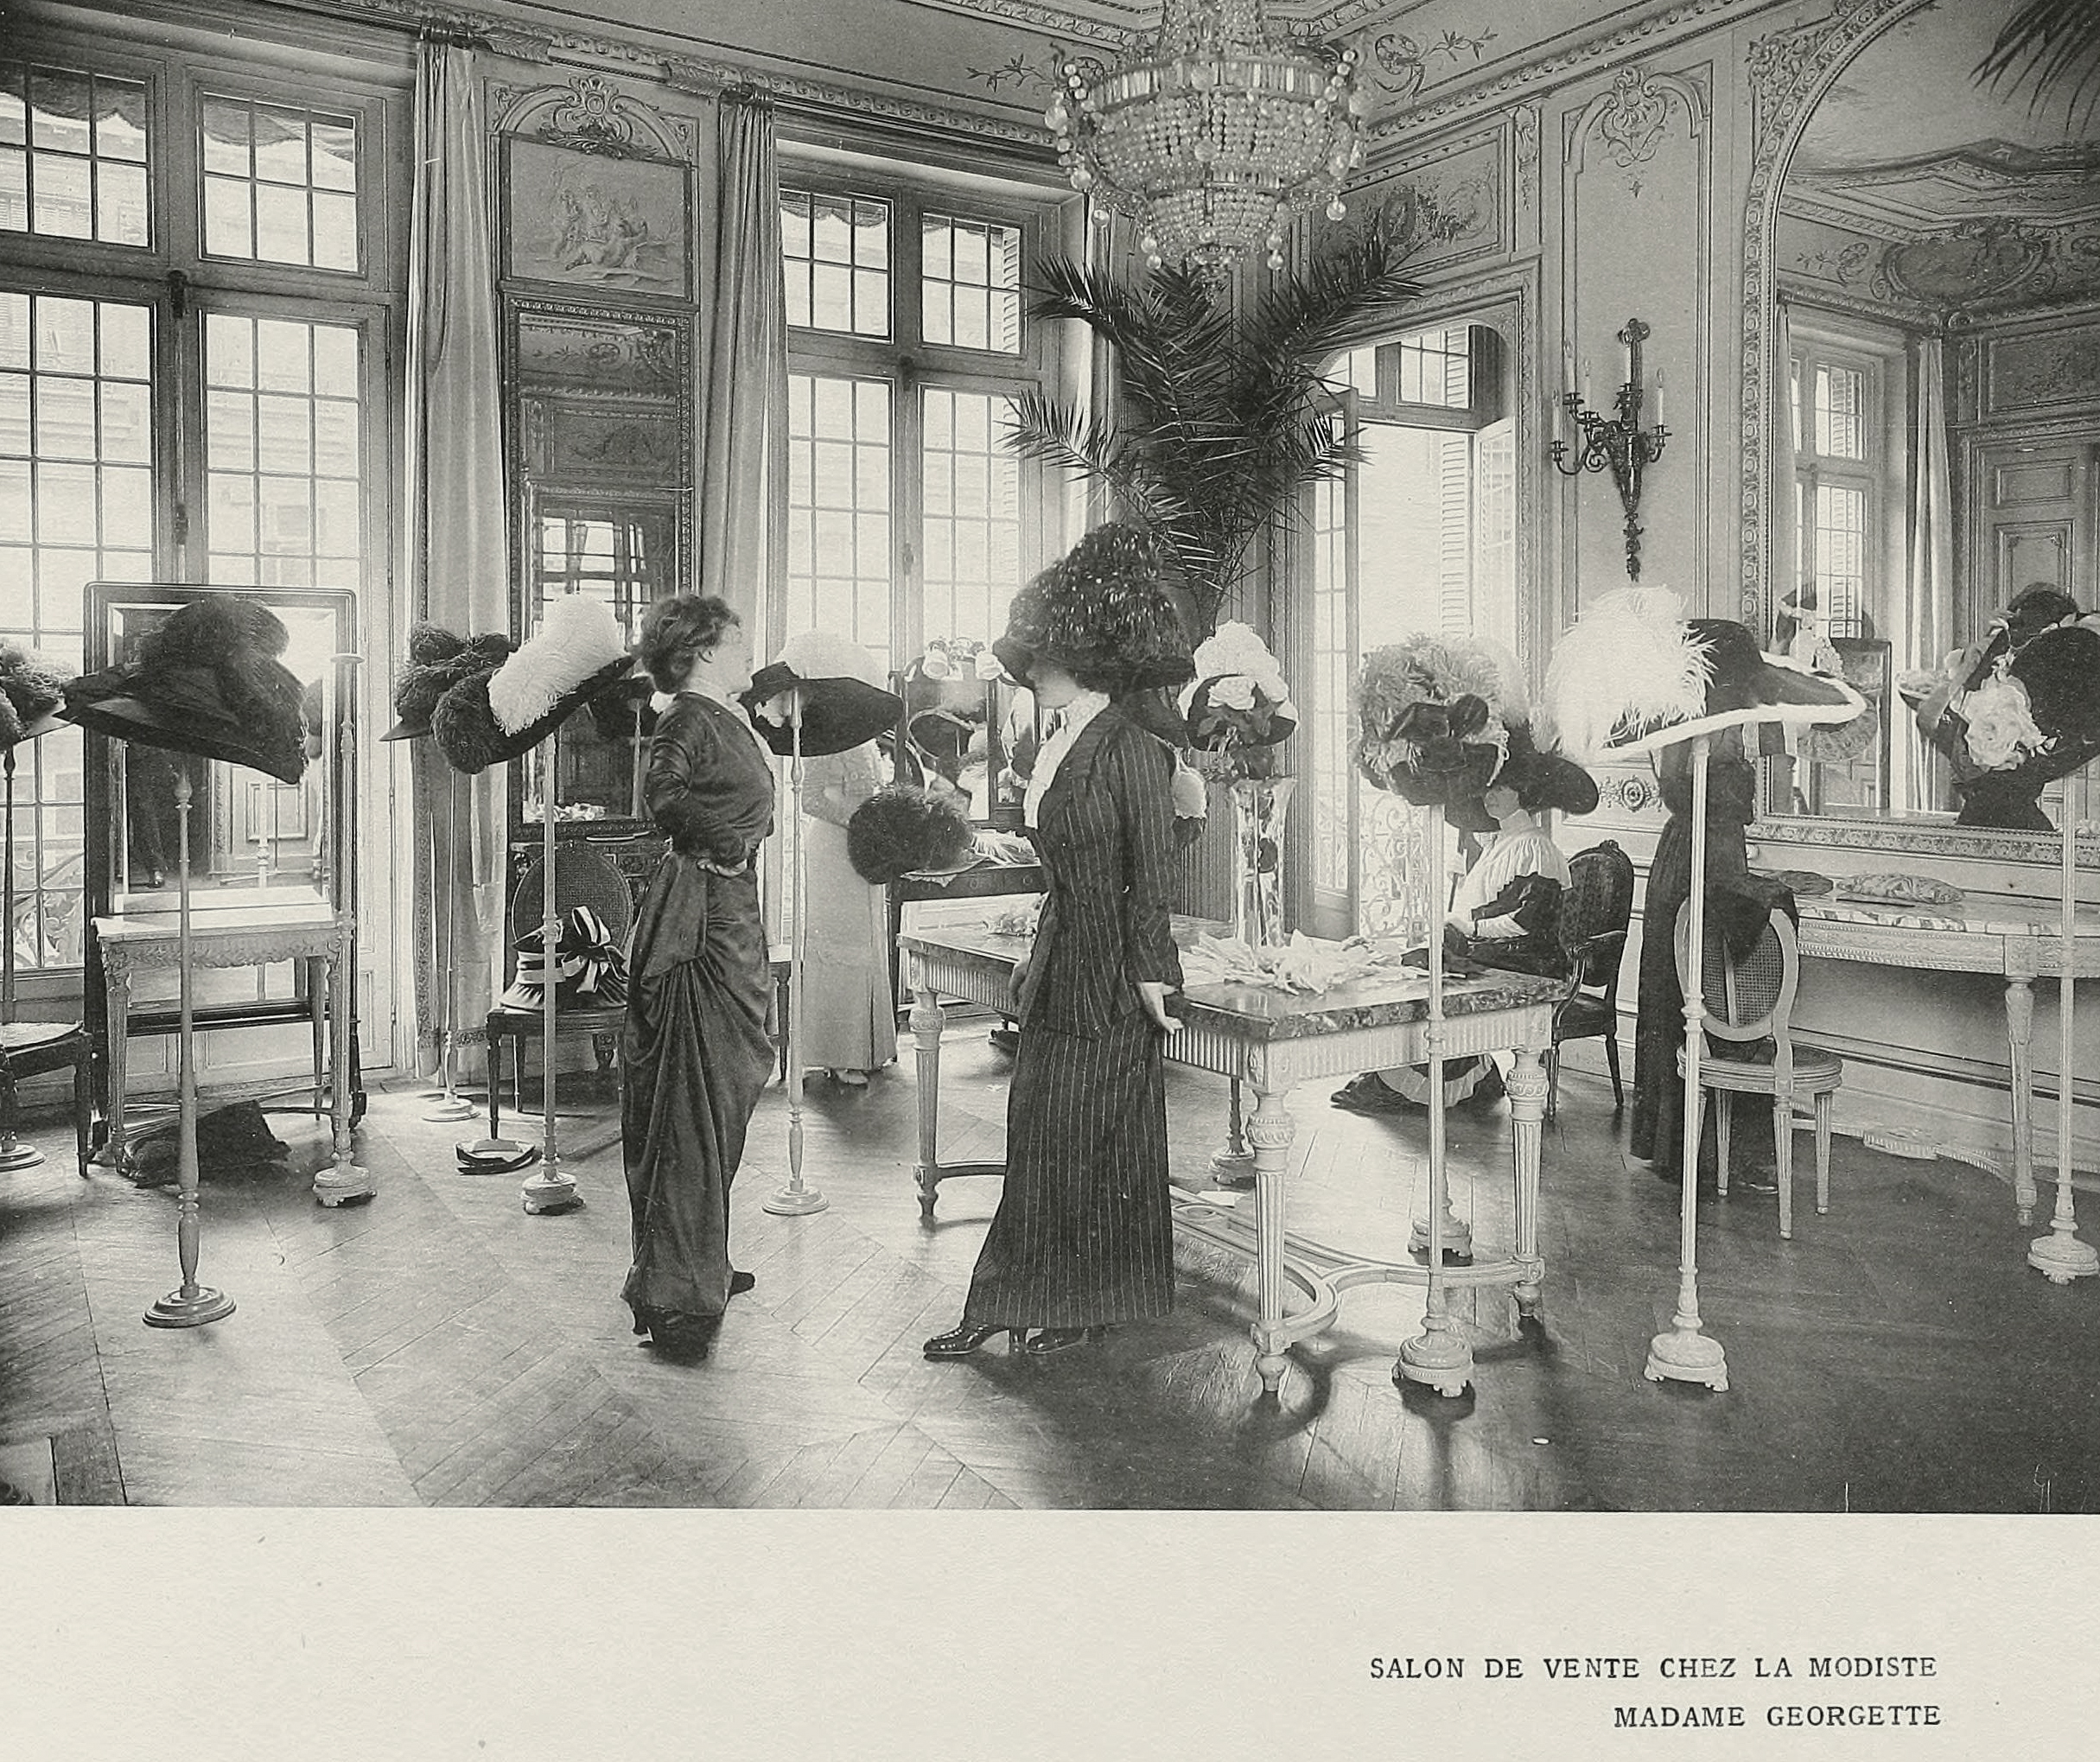 French Hat Shop Millinery Image circa 1910 - 790e33fb1f8